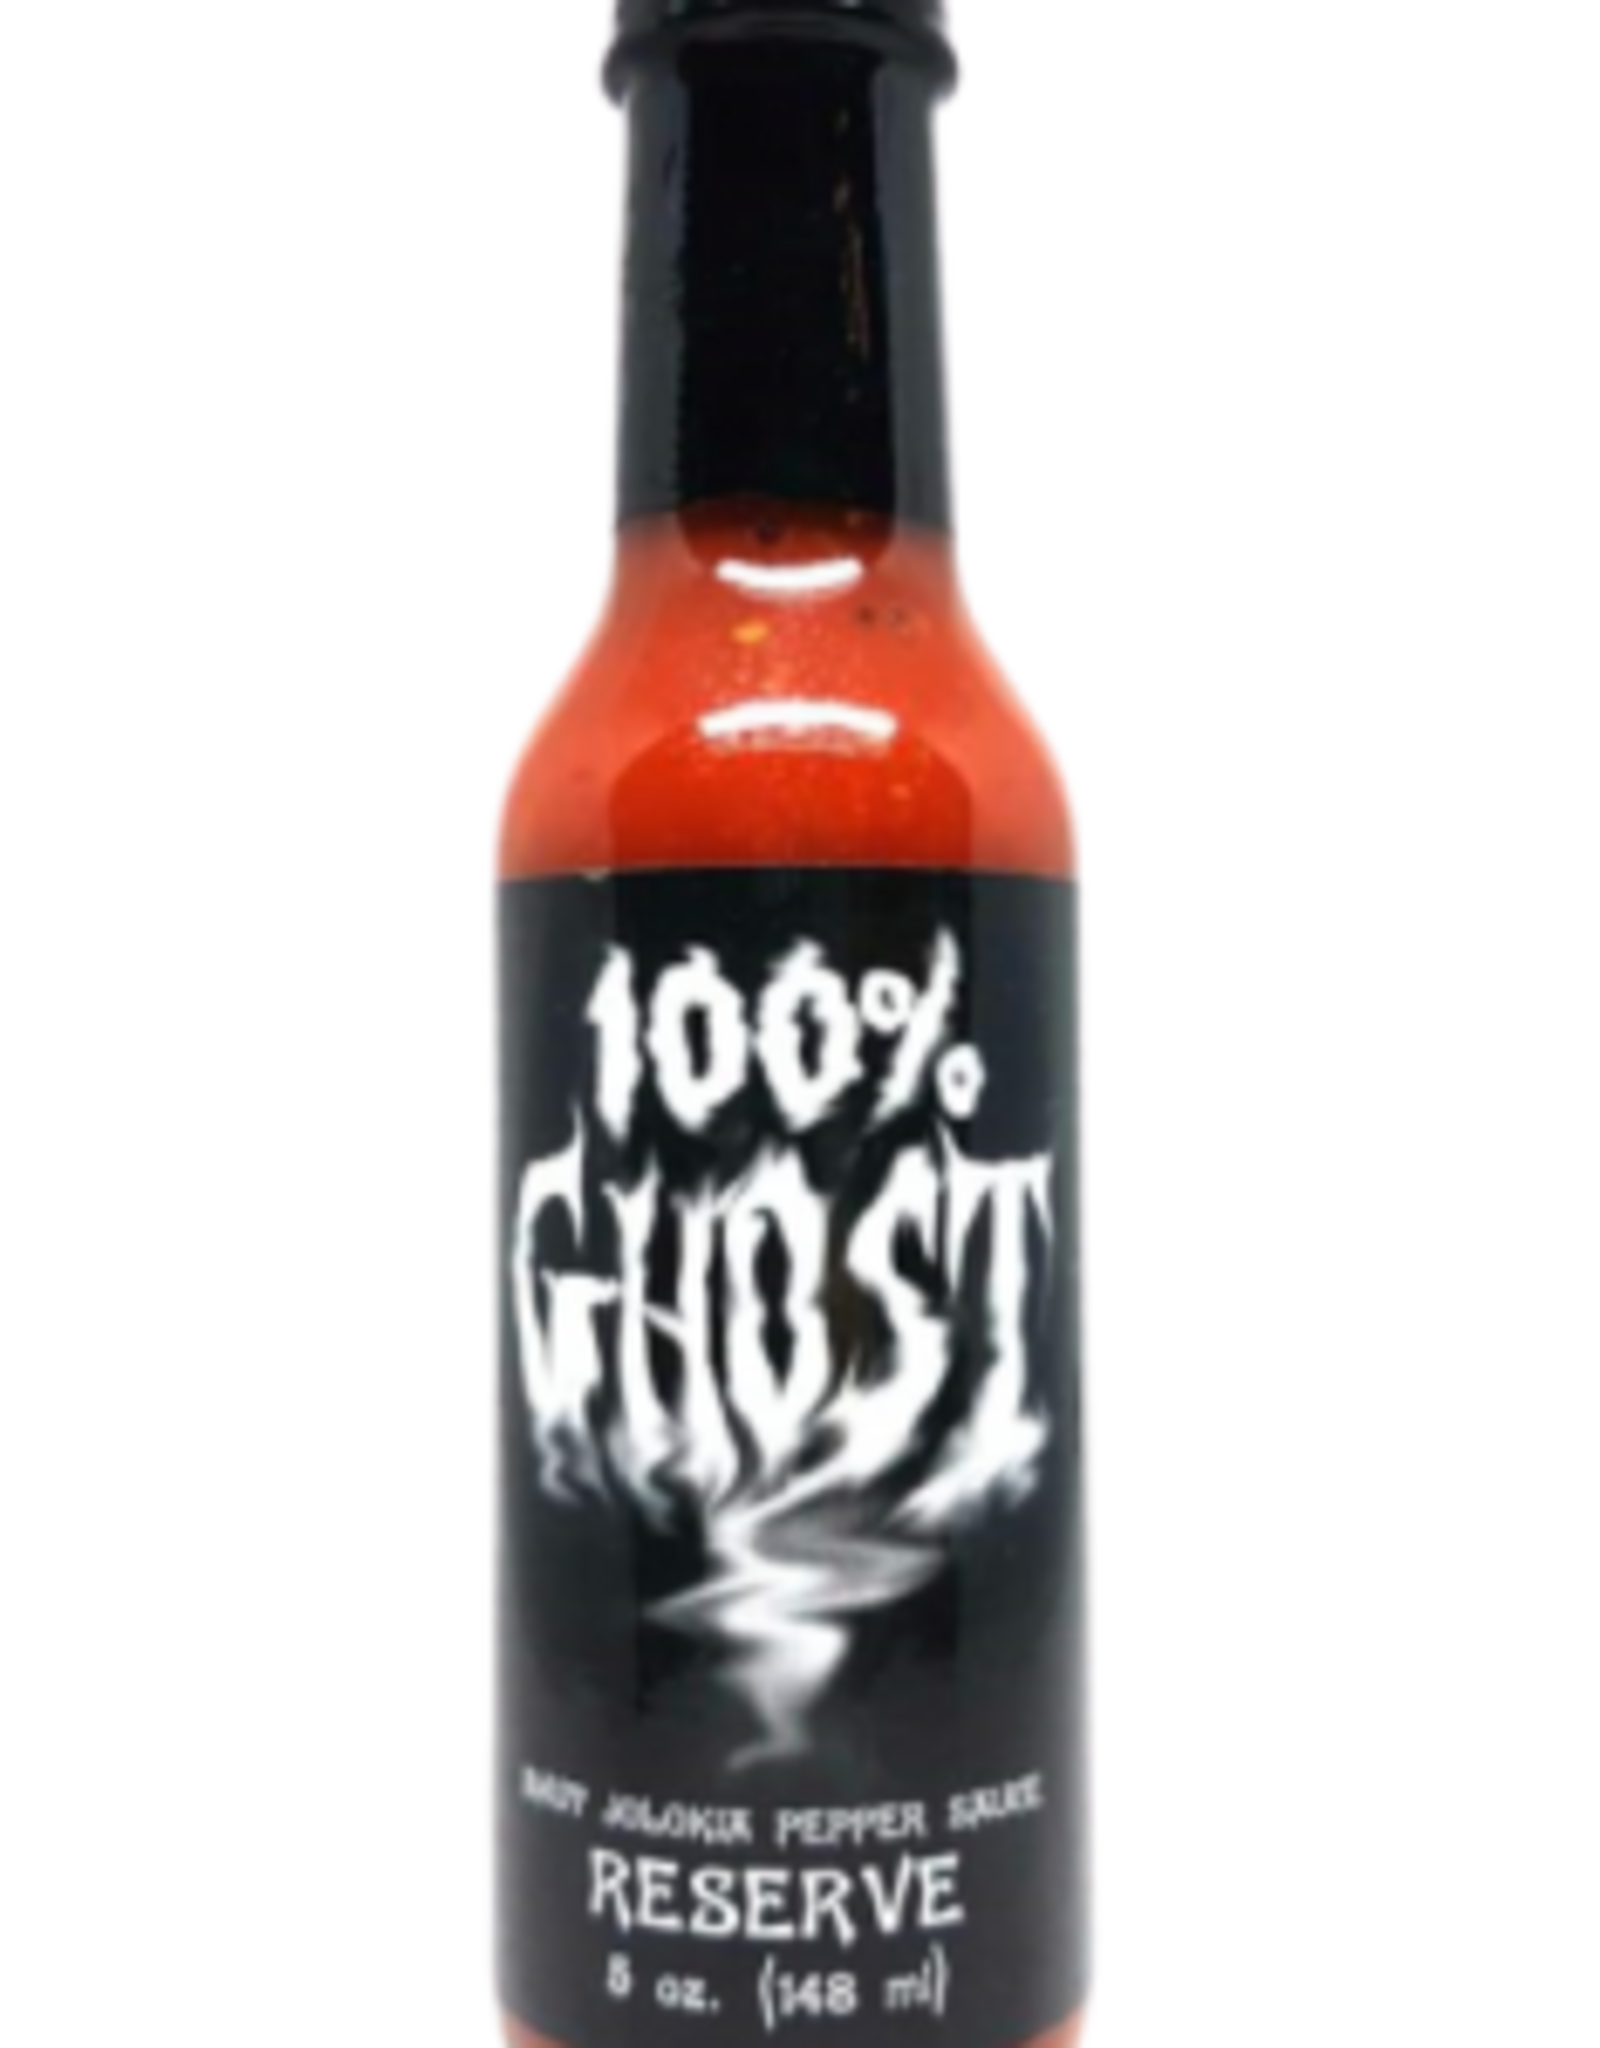 100% Ghost Reserve